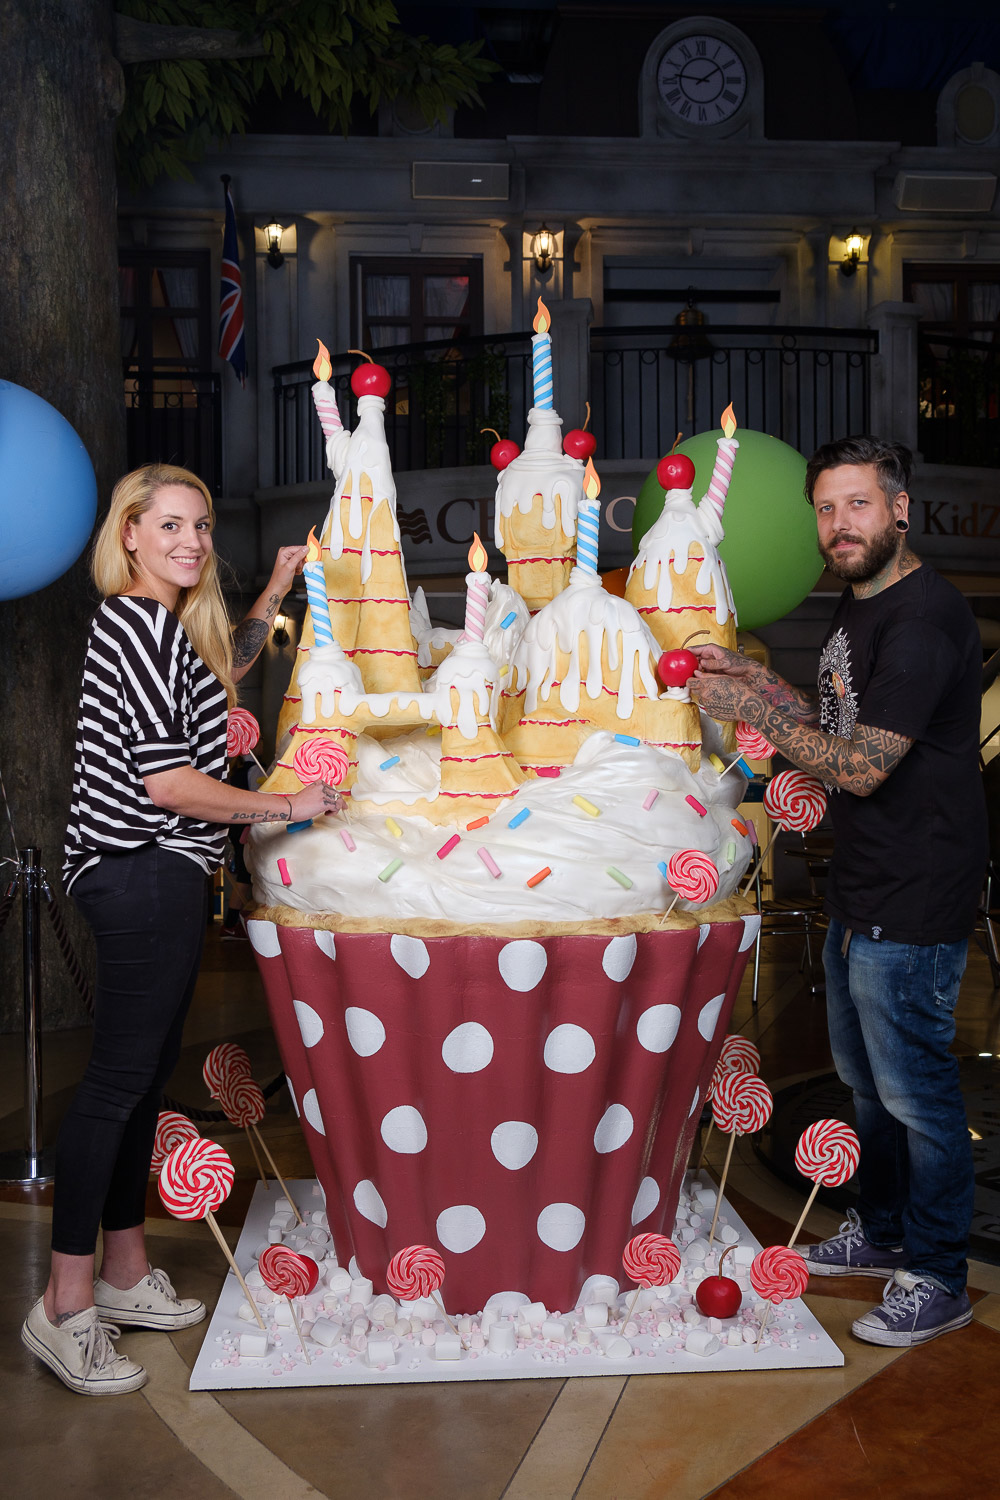 Tattooed Bakers, creative cakes, london cake bakers, london wedding cakes, creative wedding cake,